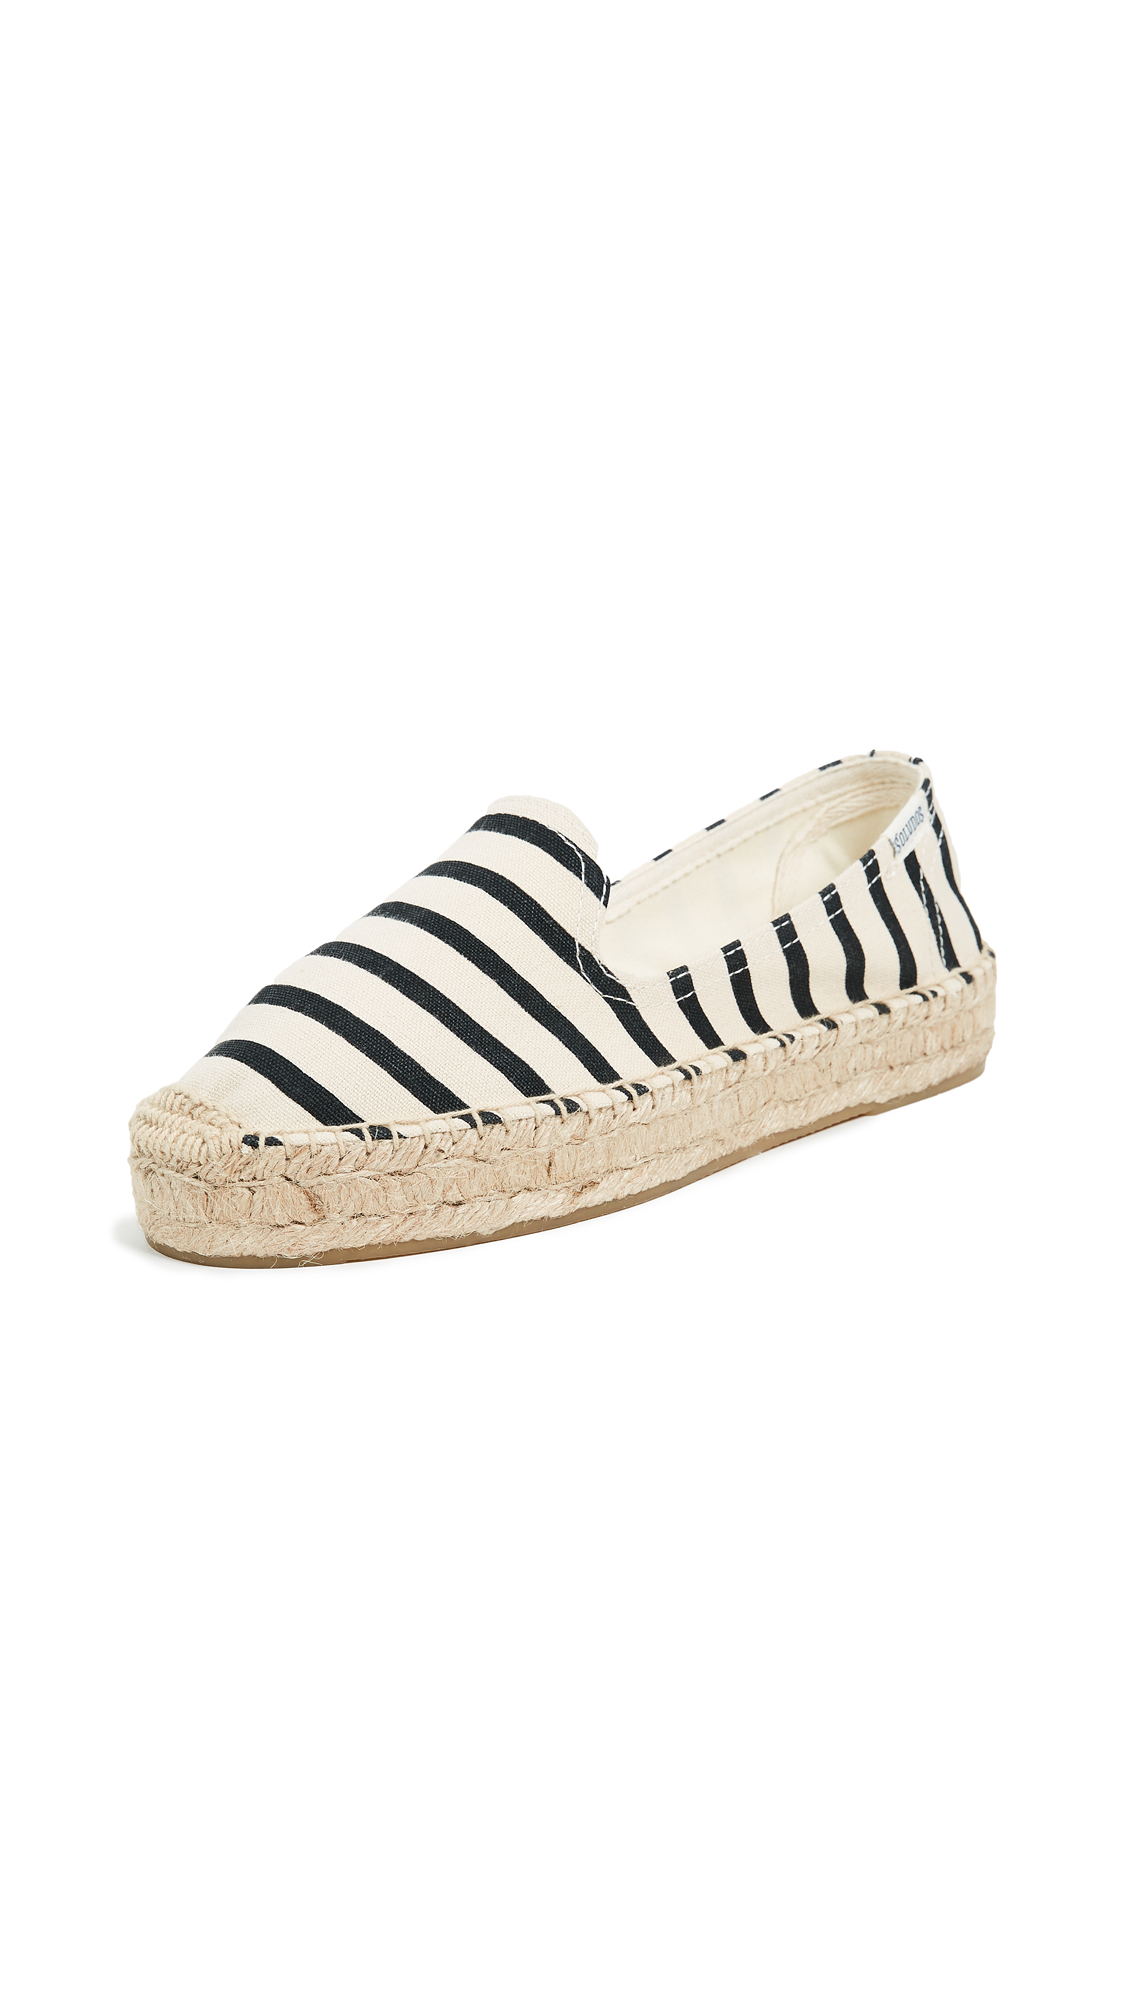 Soludos Classic Stripe Smoking Slippers - Natural/Black